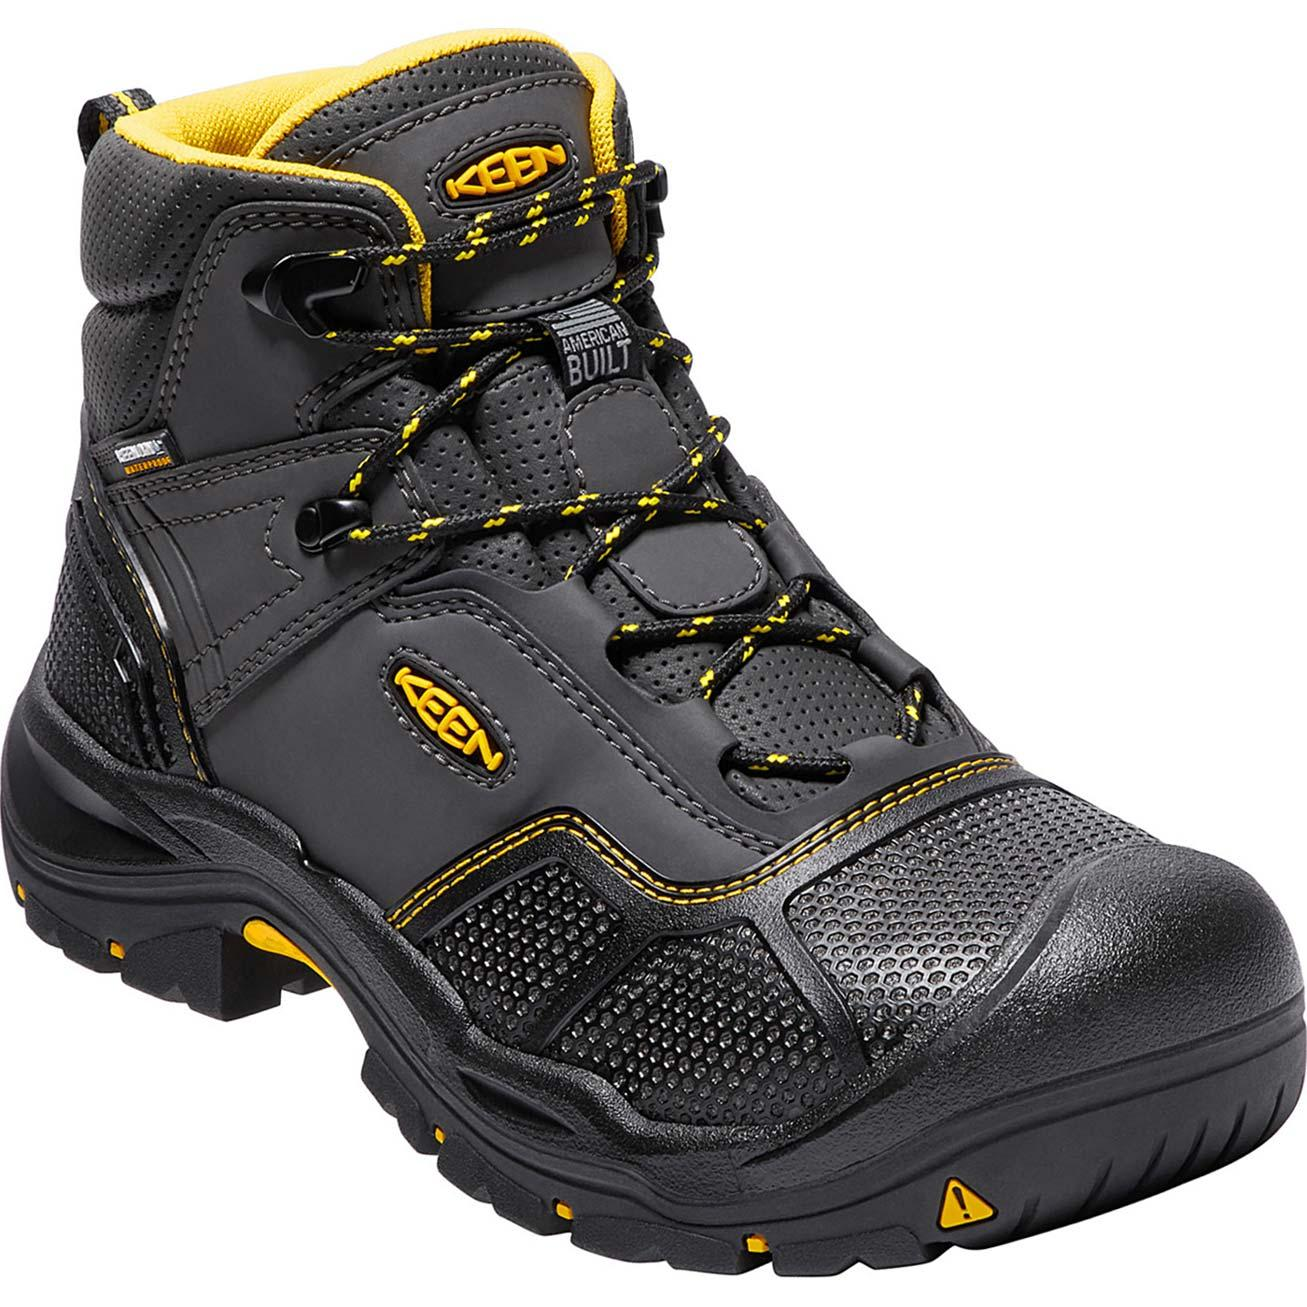 e4b26a45a90 Keen Work Boots Steel Toe - Best Picture Of Boot Imageco.Org